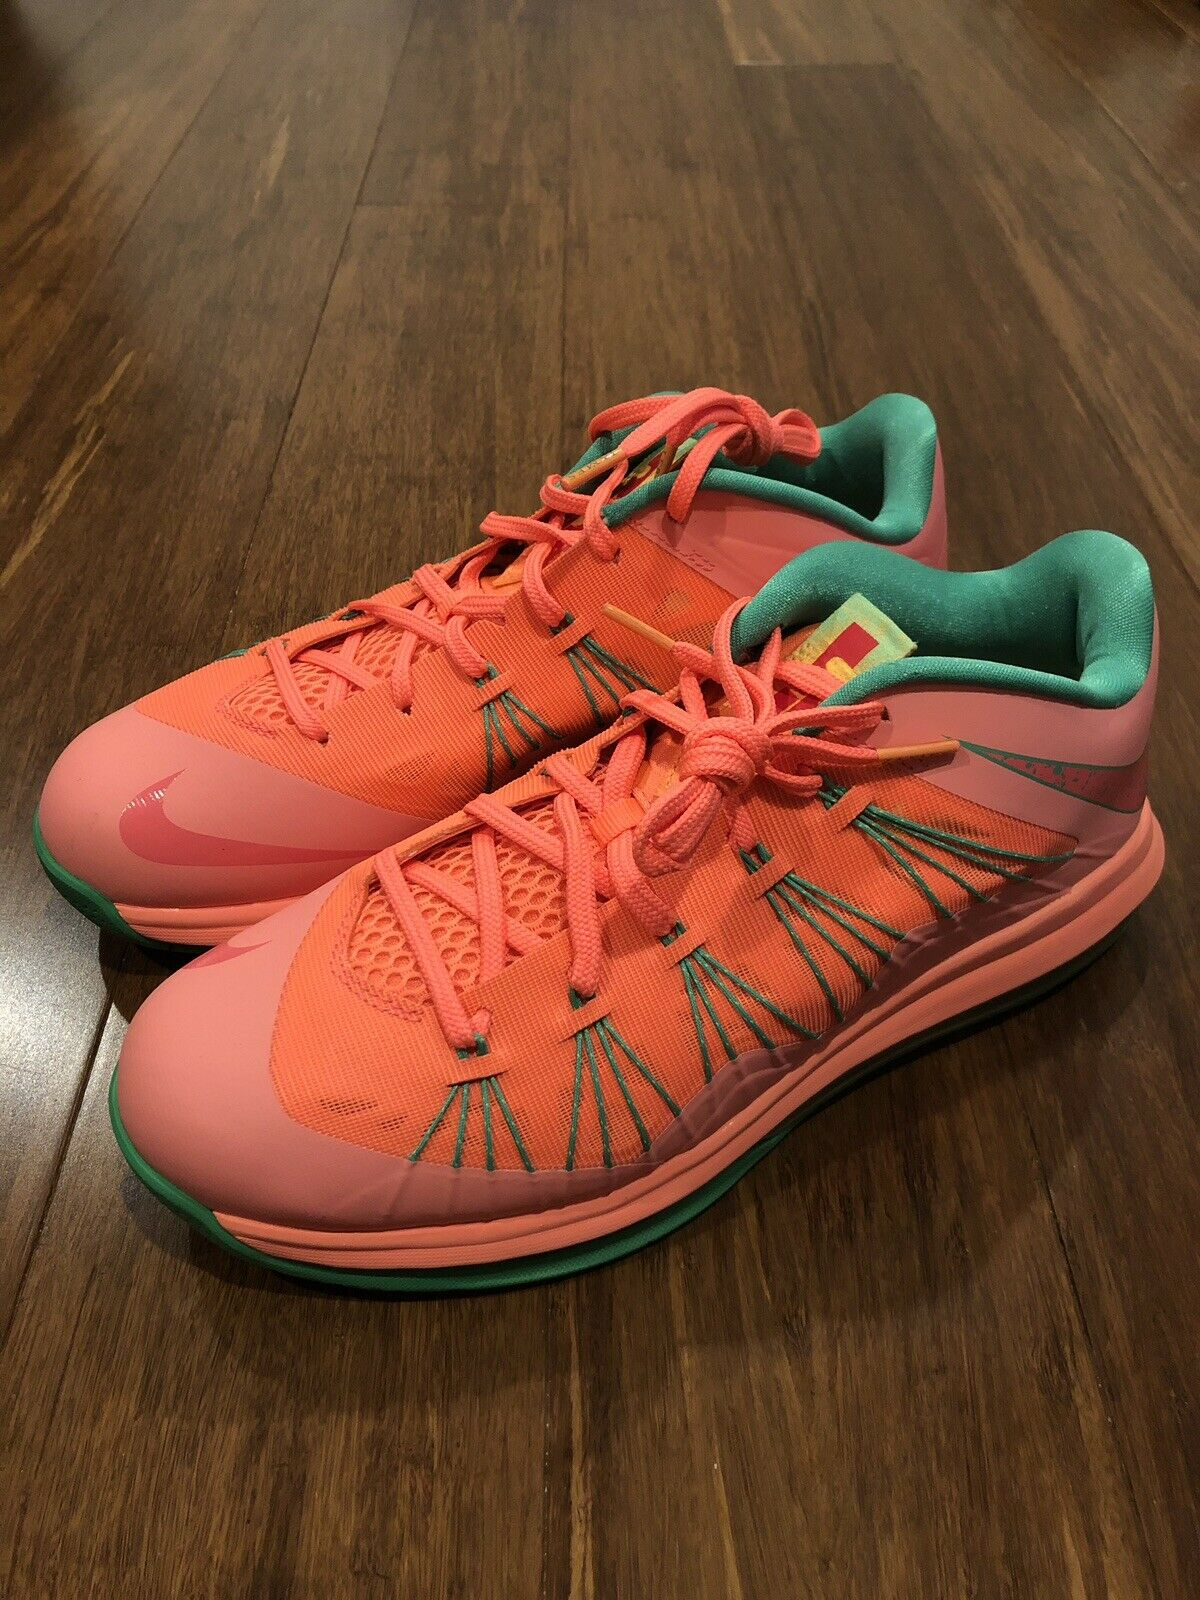 Nike Air Max LeBron X 10 Low Watermelon Basketball Size 10.5